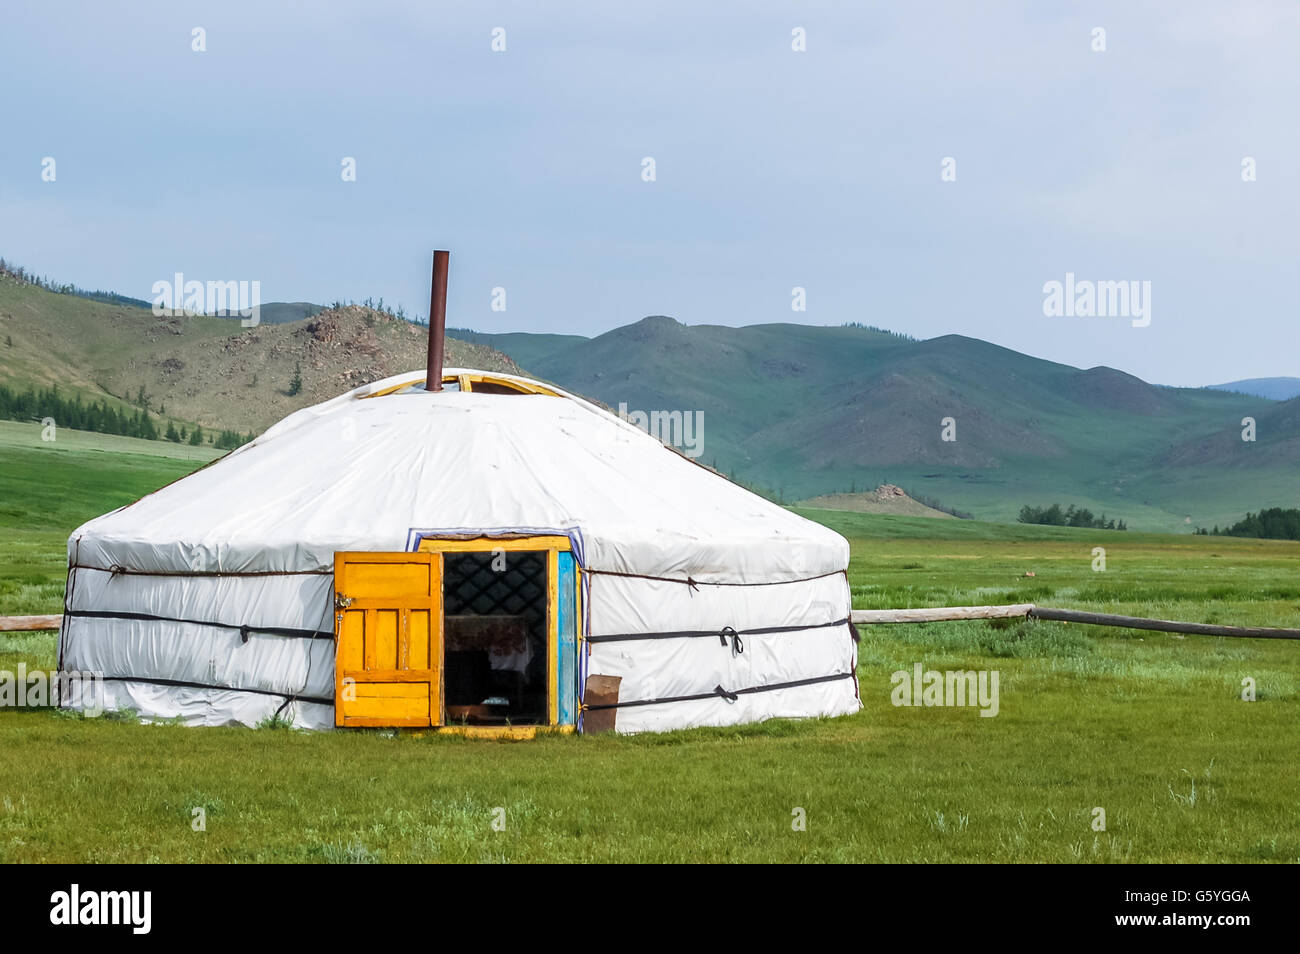 Mongolian yurt called a ger on grassy steppe of northern Mongolia - Stock Image